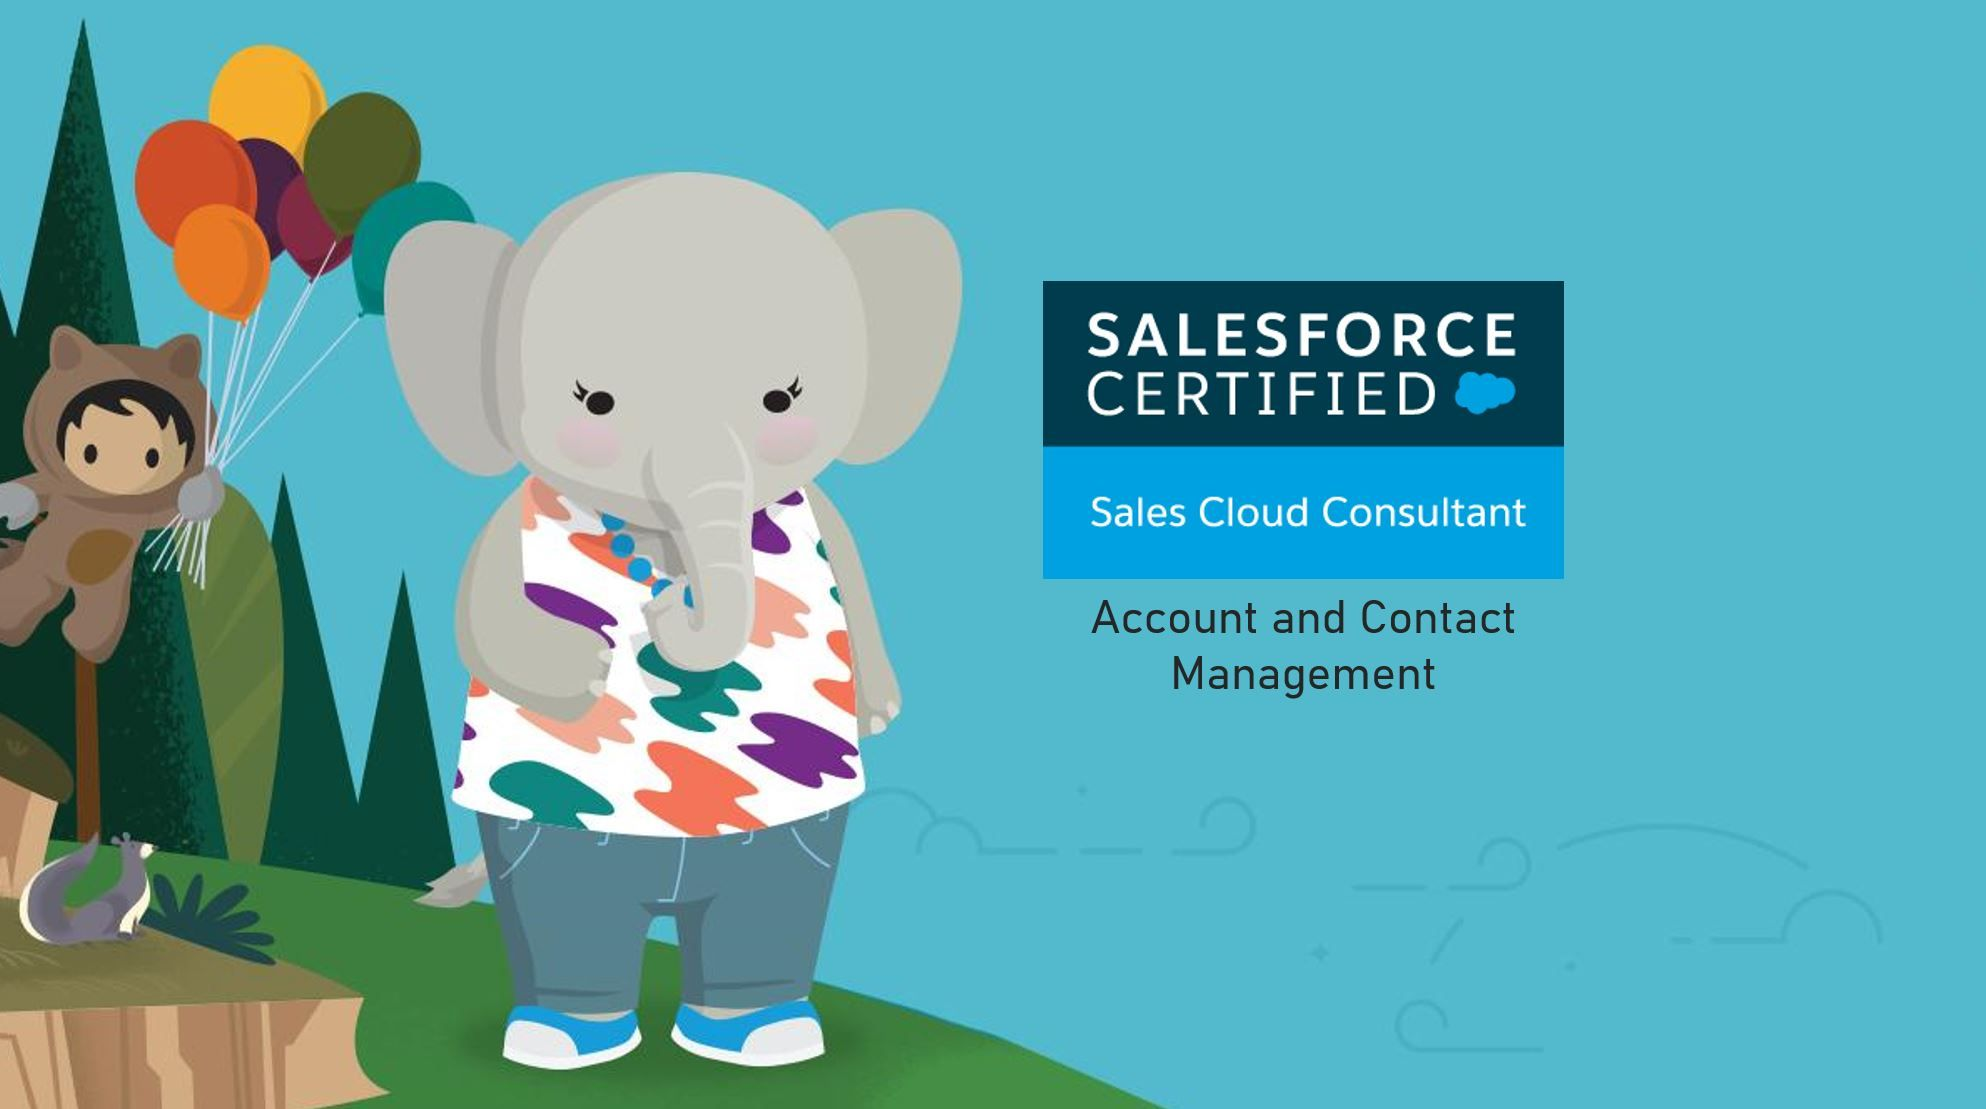 Salesforce Sales Cloud Consultant Exam Preparation: Account and Contact Management